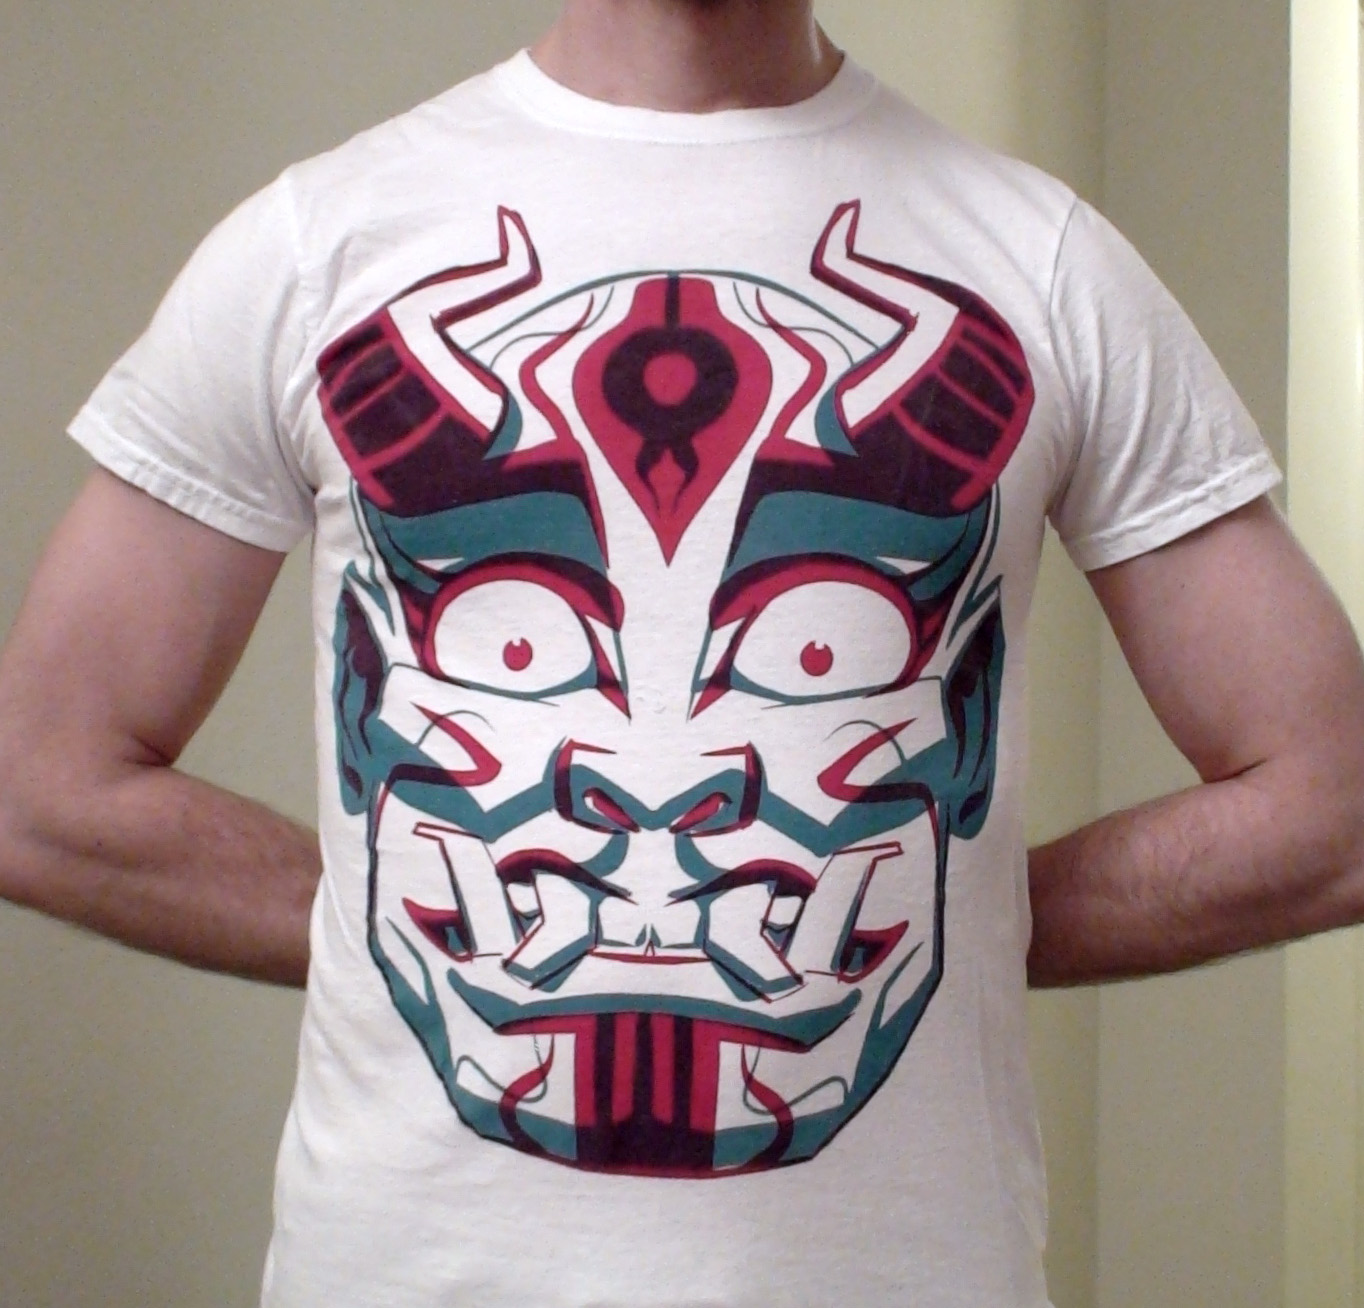 Design t shirts to sell - I Had The Best Luck With This Crazy Design Based On A Japanese Demon Or Oni I Have A Few Shirts Available In Small Medium And Large Sizes